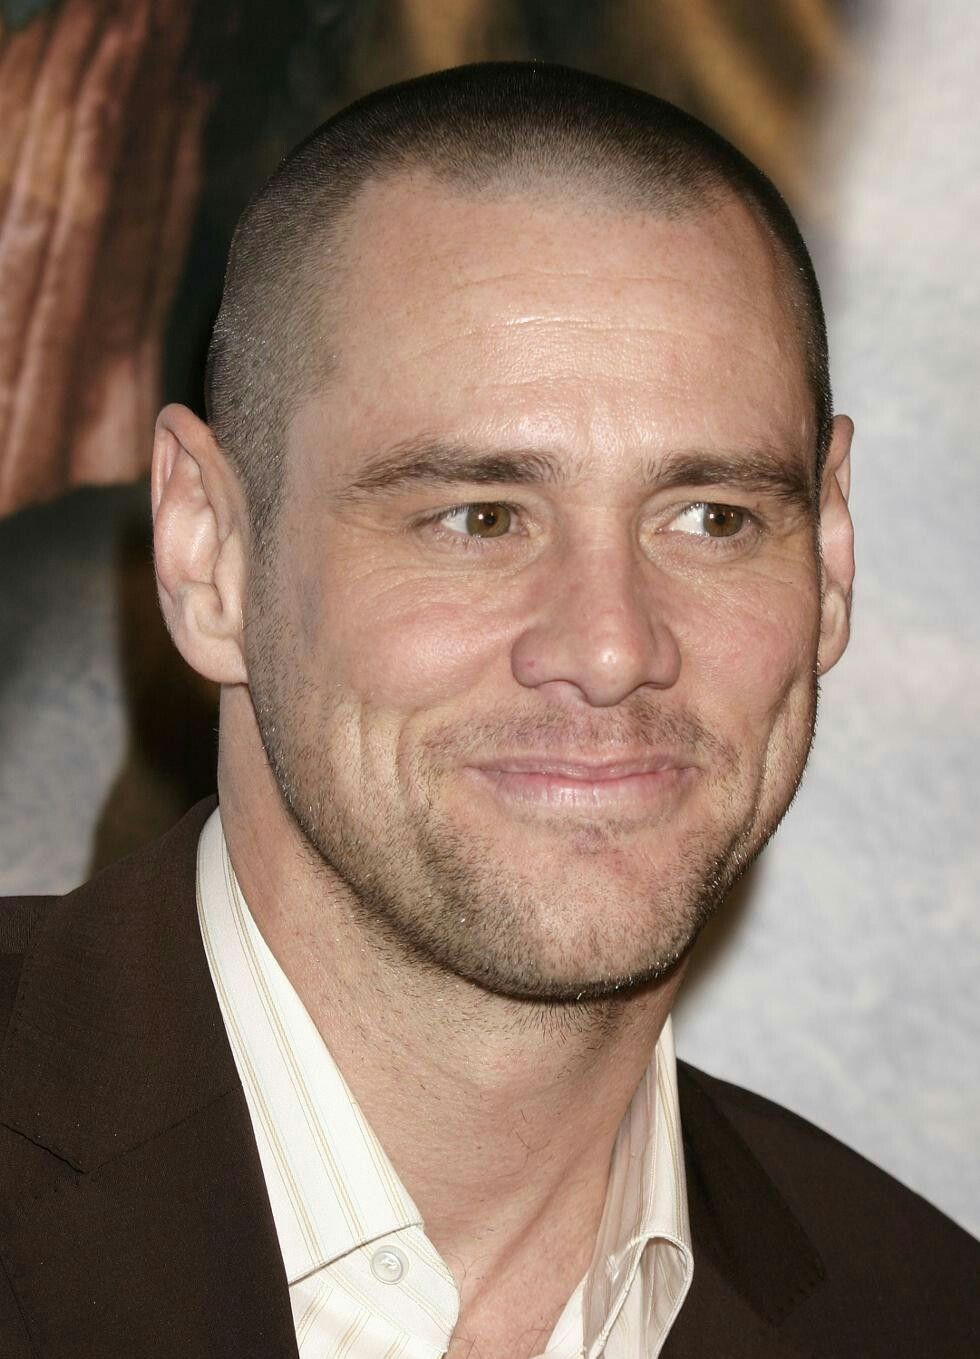 Pin By Simon Richards On A A Bald Or Shaved Bald Jim Carrey Mens Hairstyles Short Celebrities Male